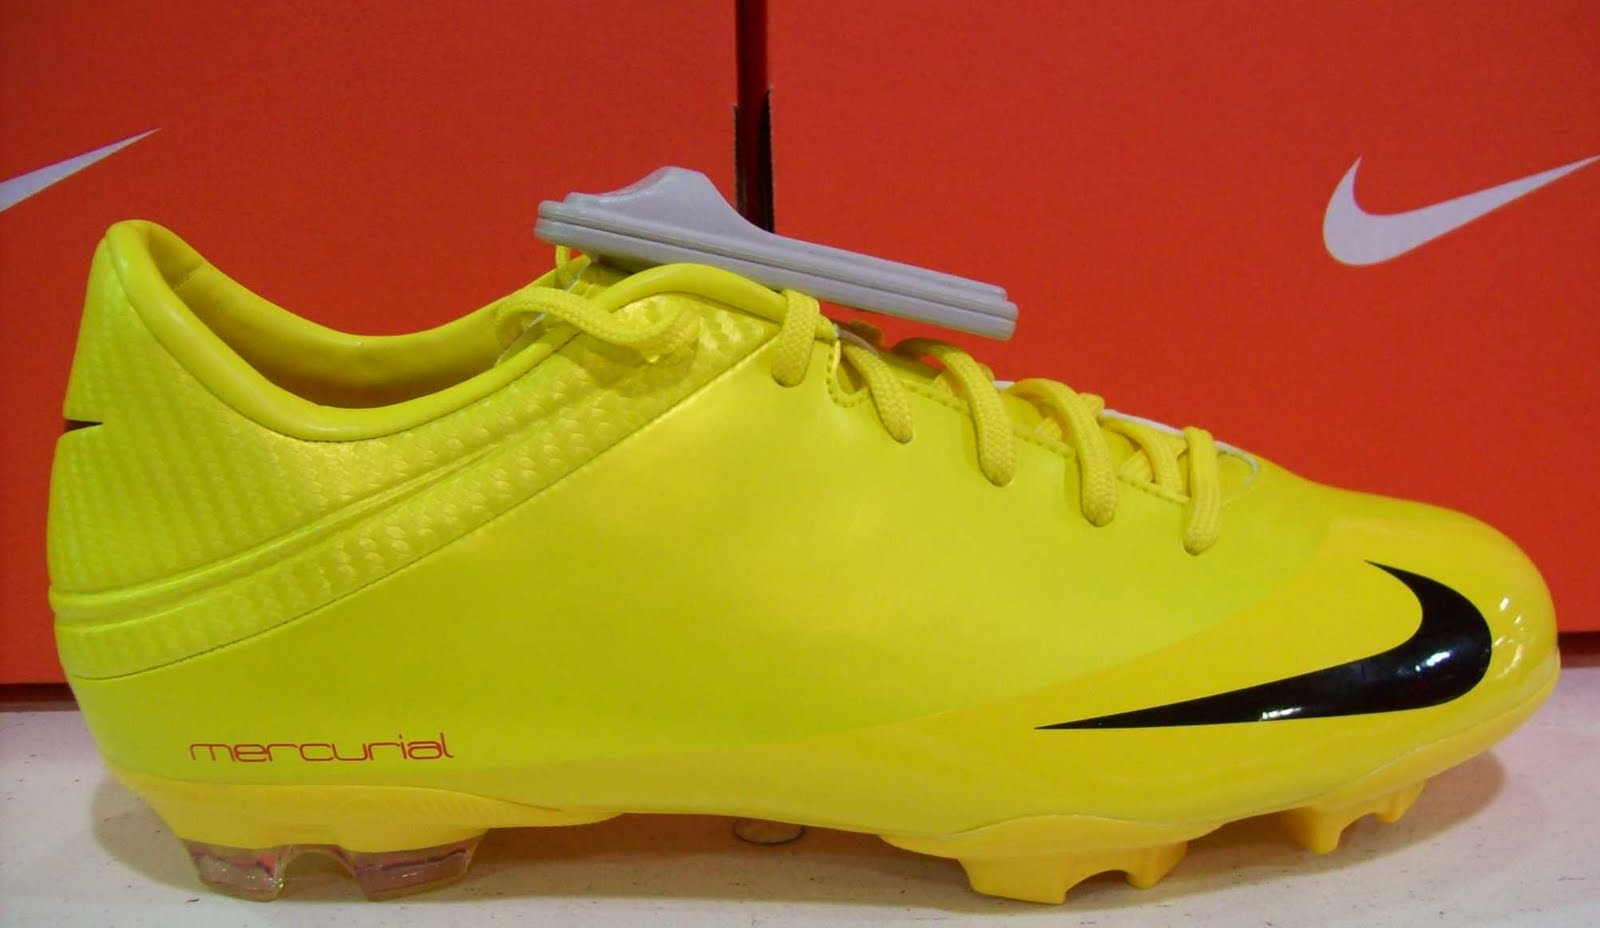 Zapatillas de fútbol Nike Mercurial Superfly 6 Club Neymar Mg Jr AO2888 710 amarillo amarillo